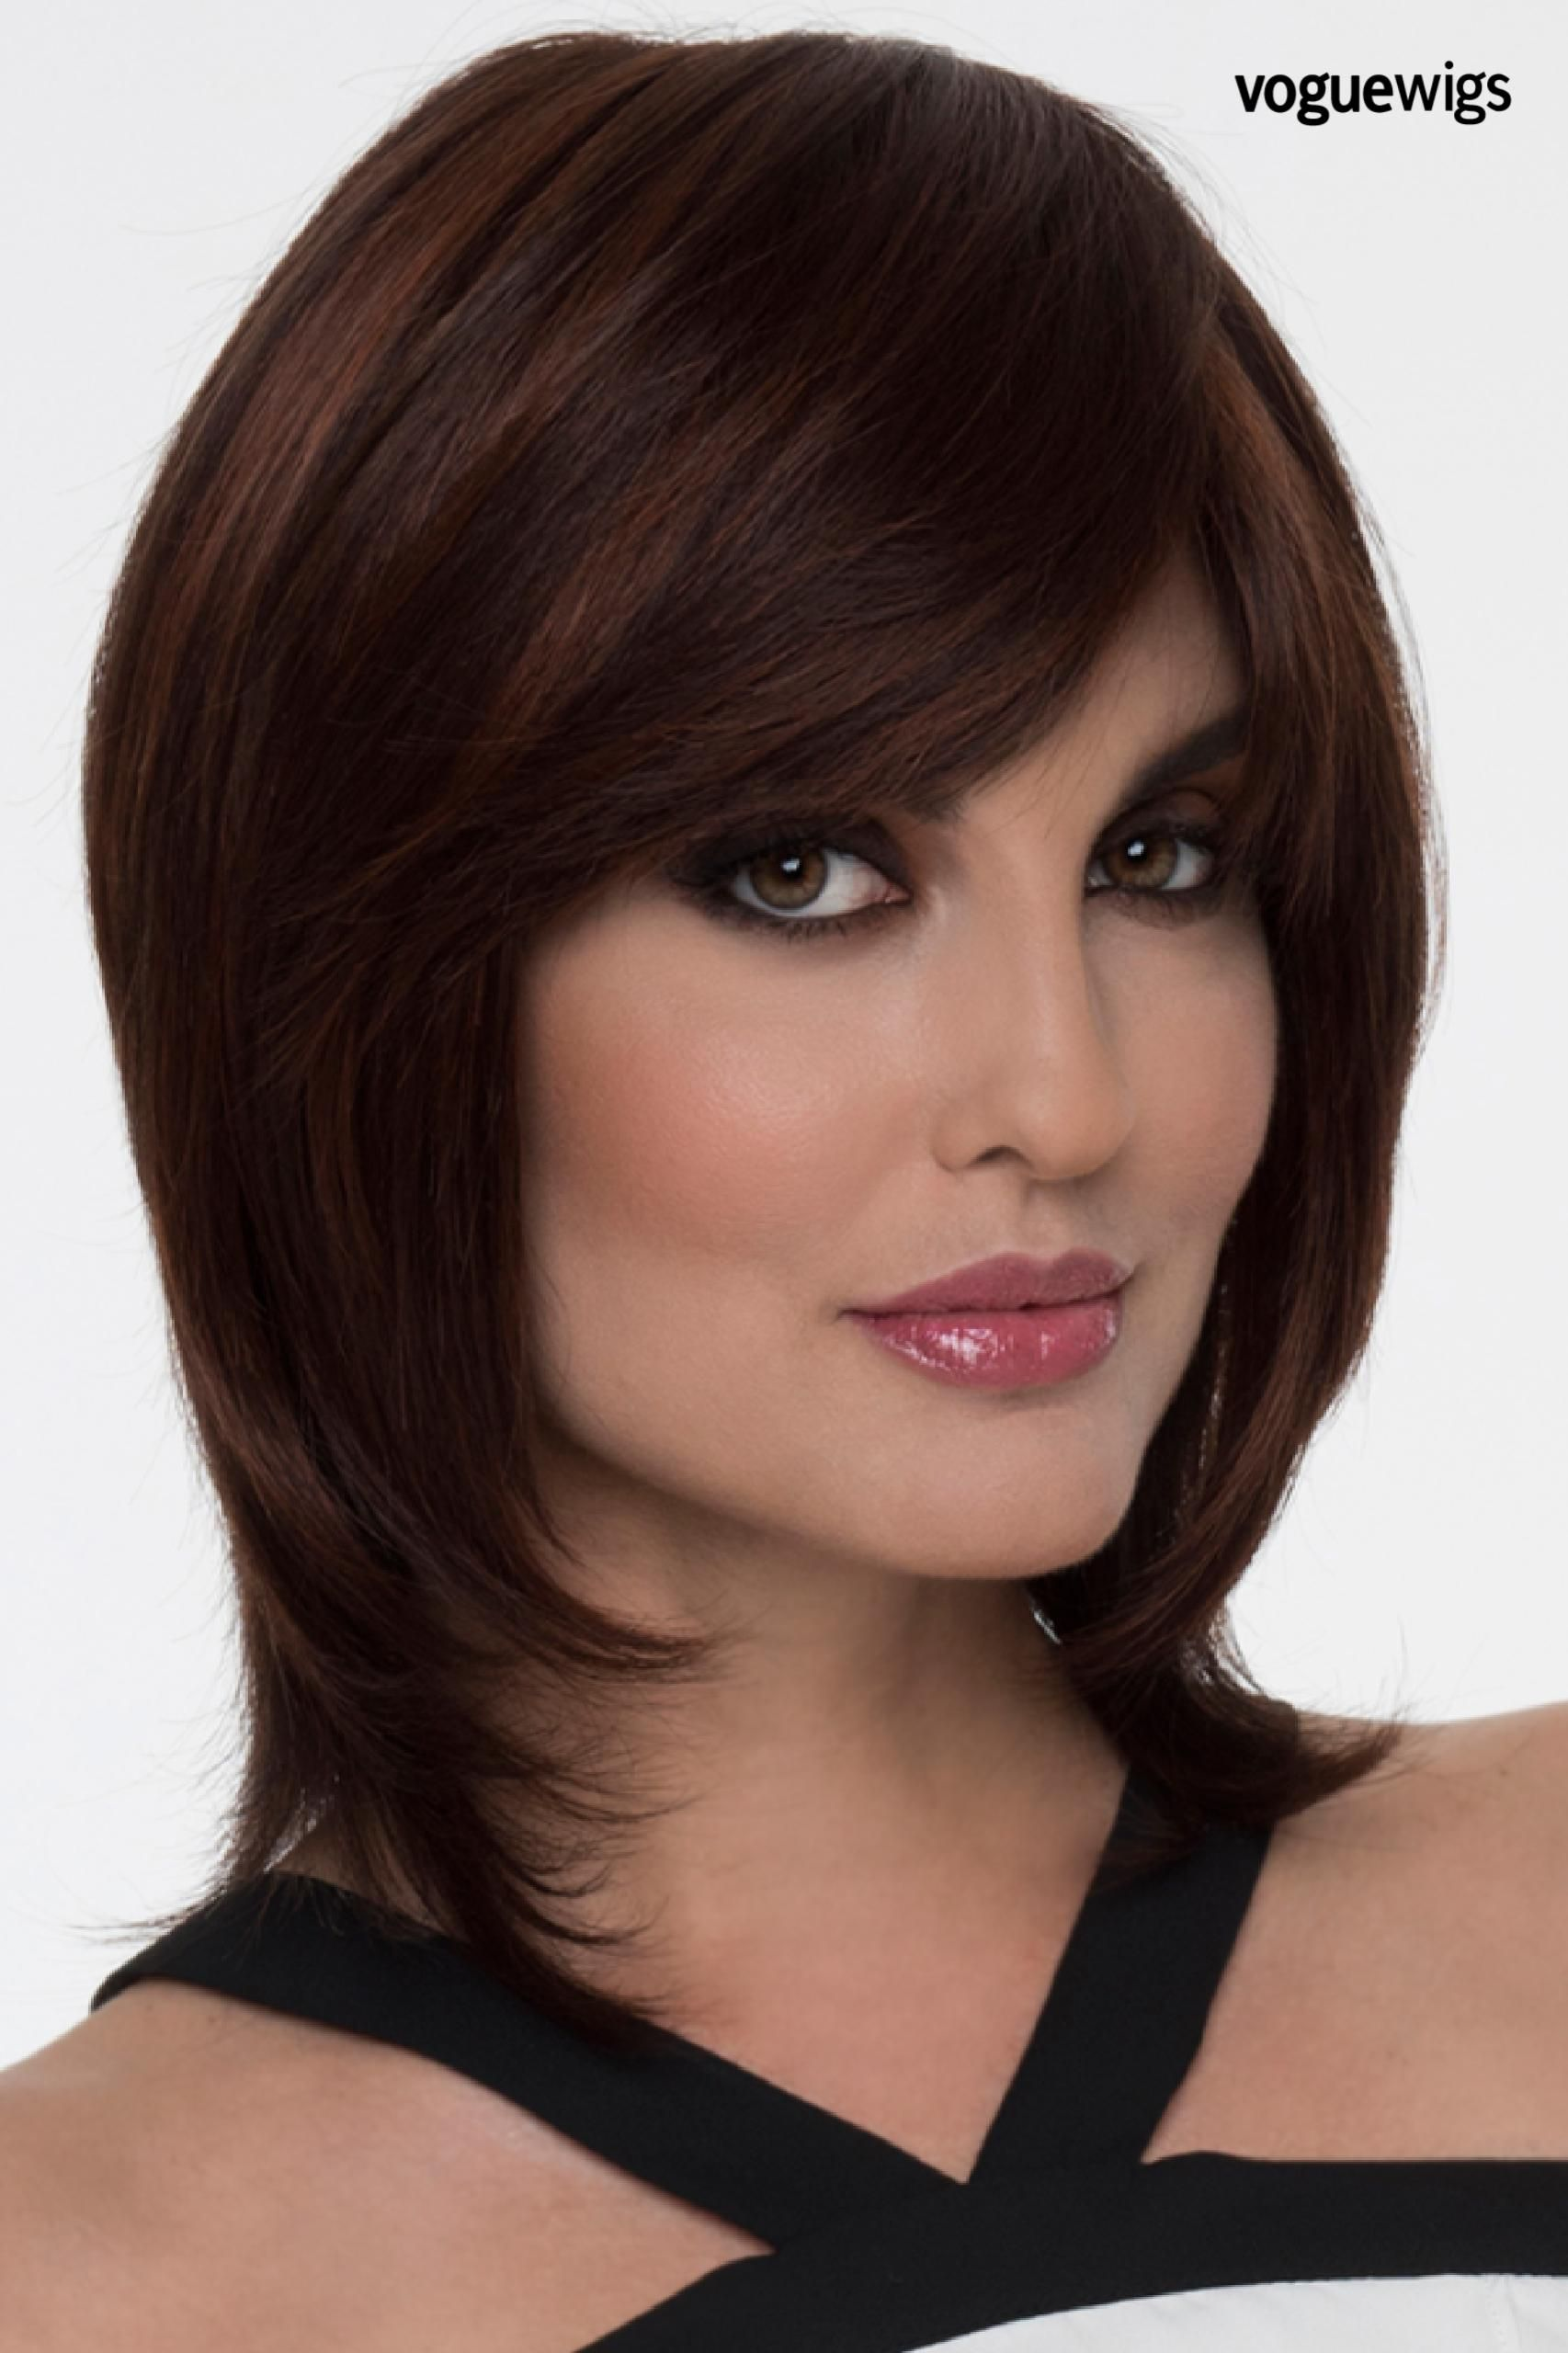 The Grace by Envy has a thick side swept bangs and long face